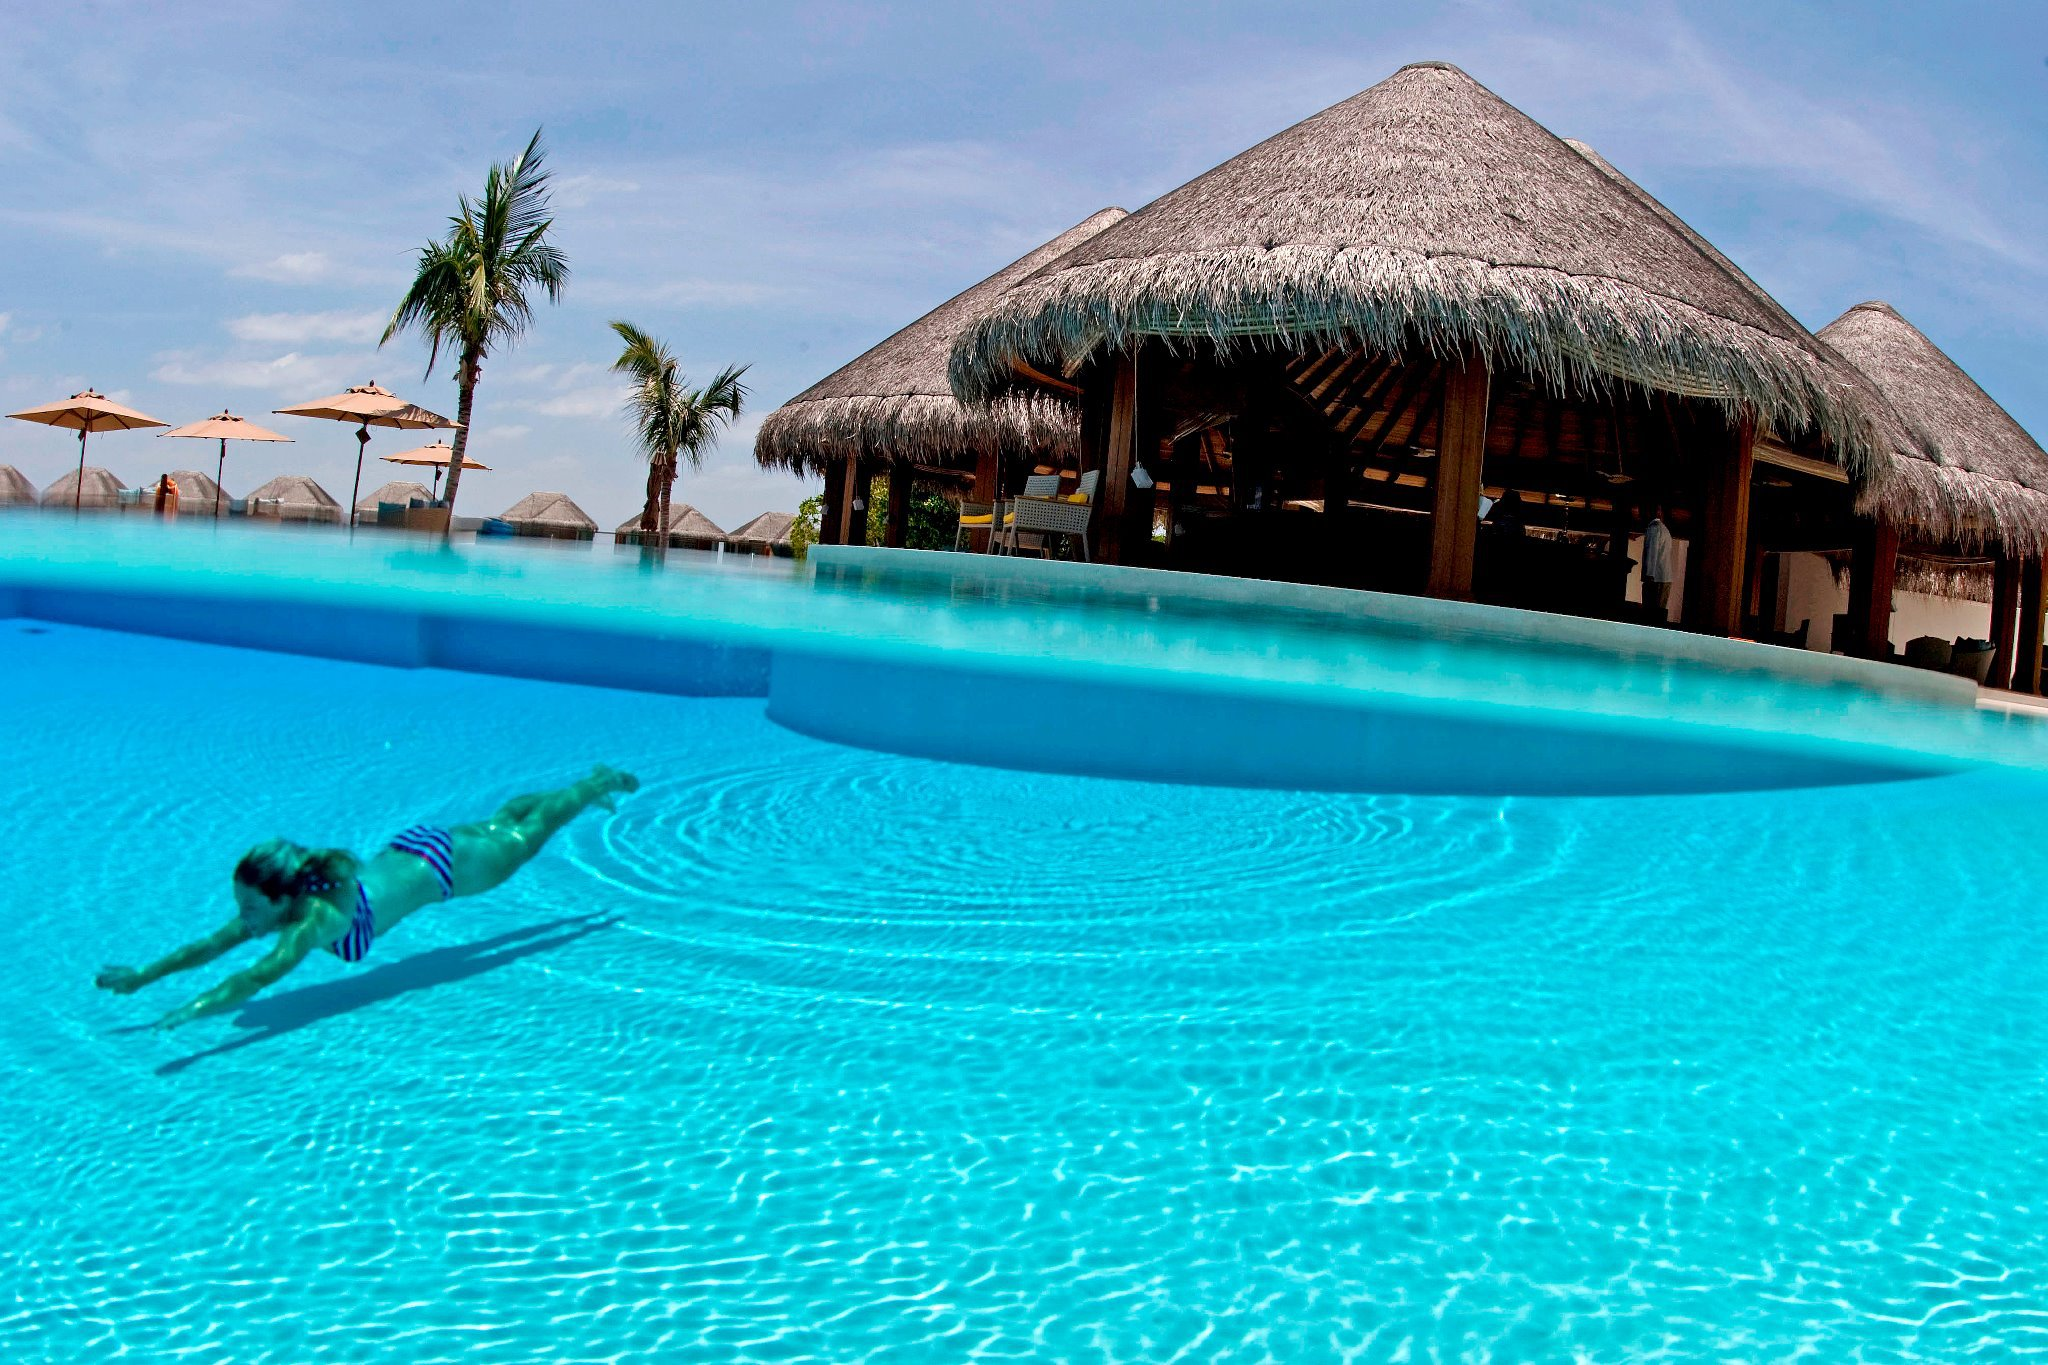 Now You should buy Pool Cleaning Services